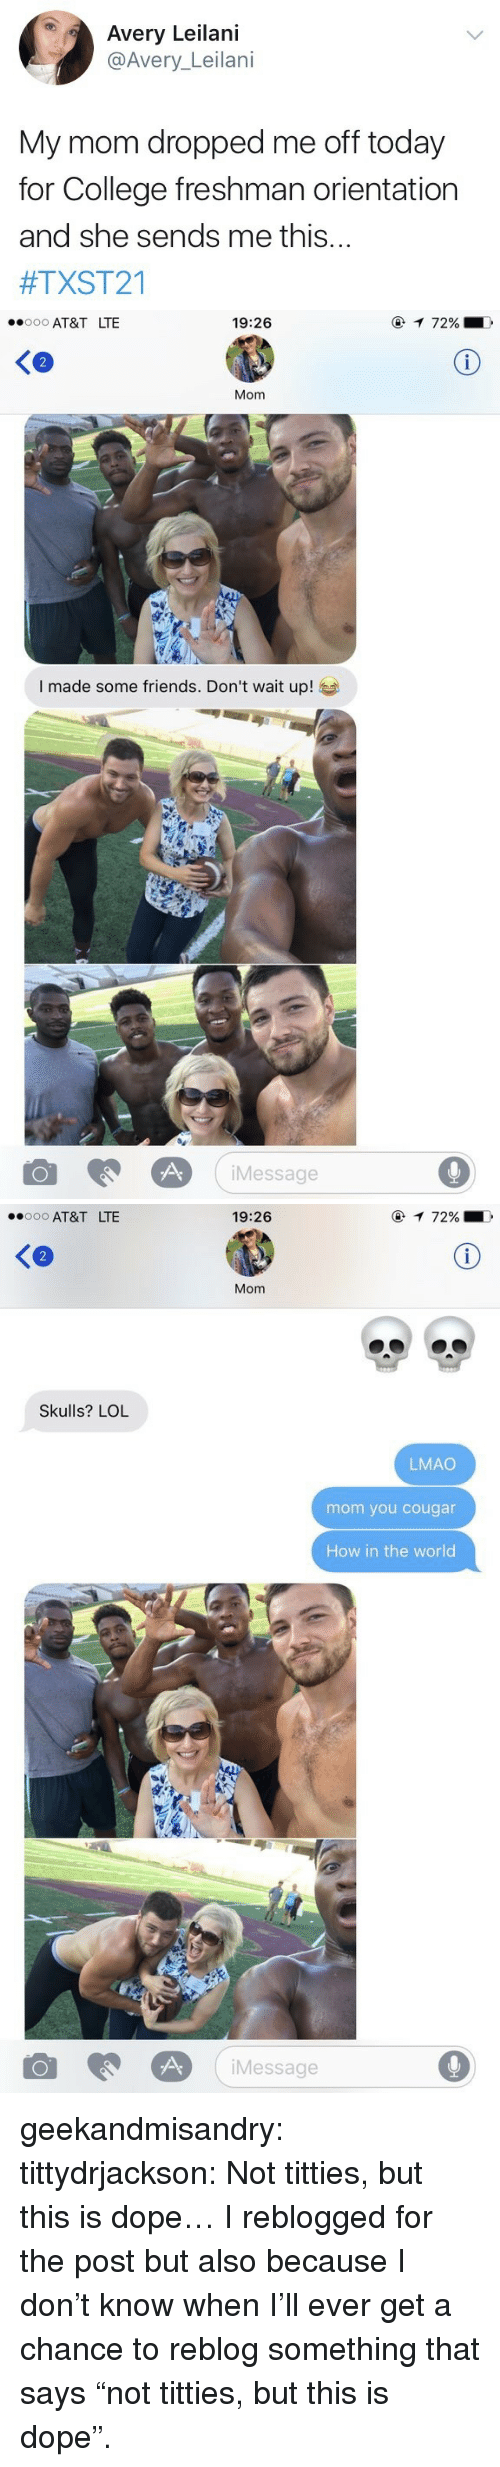 """College, Dope, and Friends: Avery Leilani  @Avery_Leilani  My mom dropped me off today  for College freshman orientation  and she sends me this...  #TXST21   AT&T LTE  19:26  2  Mom  I made some friends. Don't wait up!  iMessage  9   AT&T LTE  19:26  Ke  Mom  Skulls? LOL  LMAO  mom you cougar  How in the world  Message  9 geekandmisandry:  tittydrjackson:  Not titties, but this is dope…  I reblogged for the post but also because I don't know when I'll ever get a chance to reblog something that says """"not titties, but this is dope""""."""